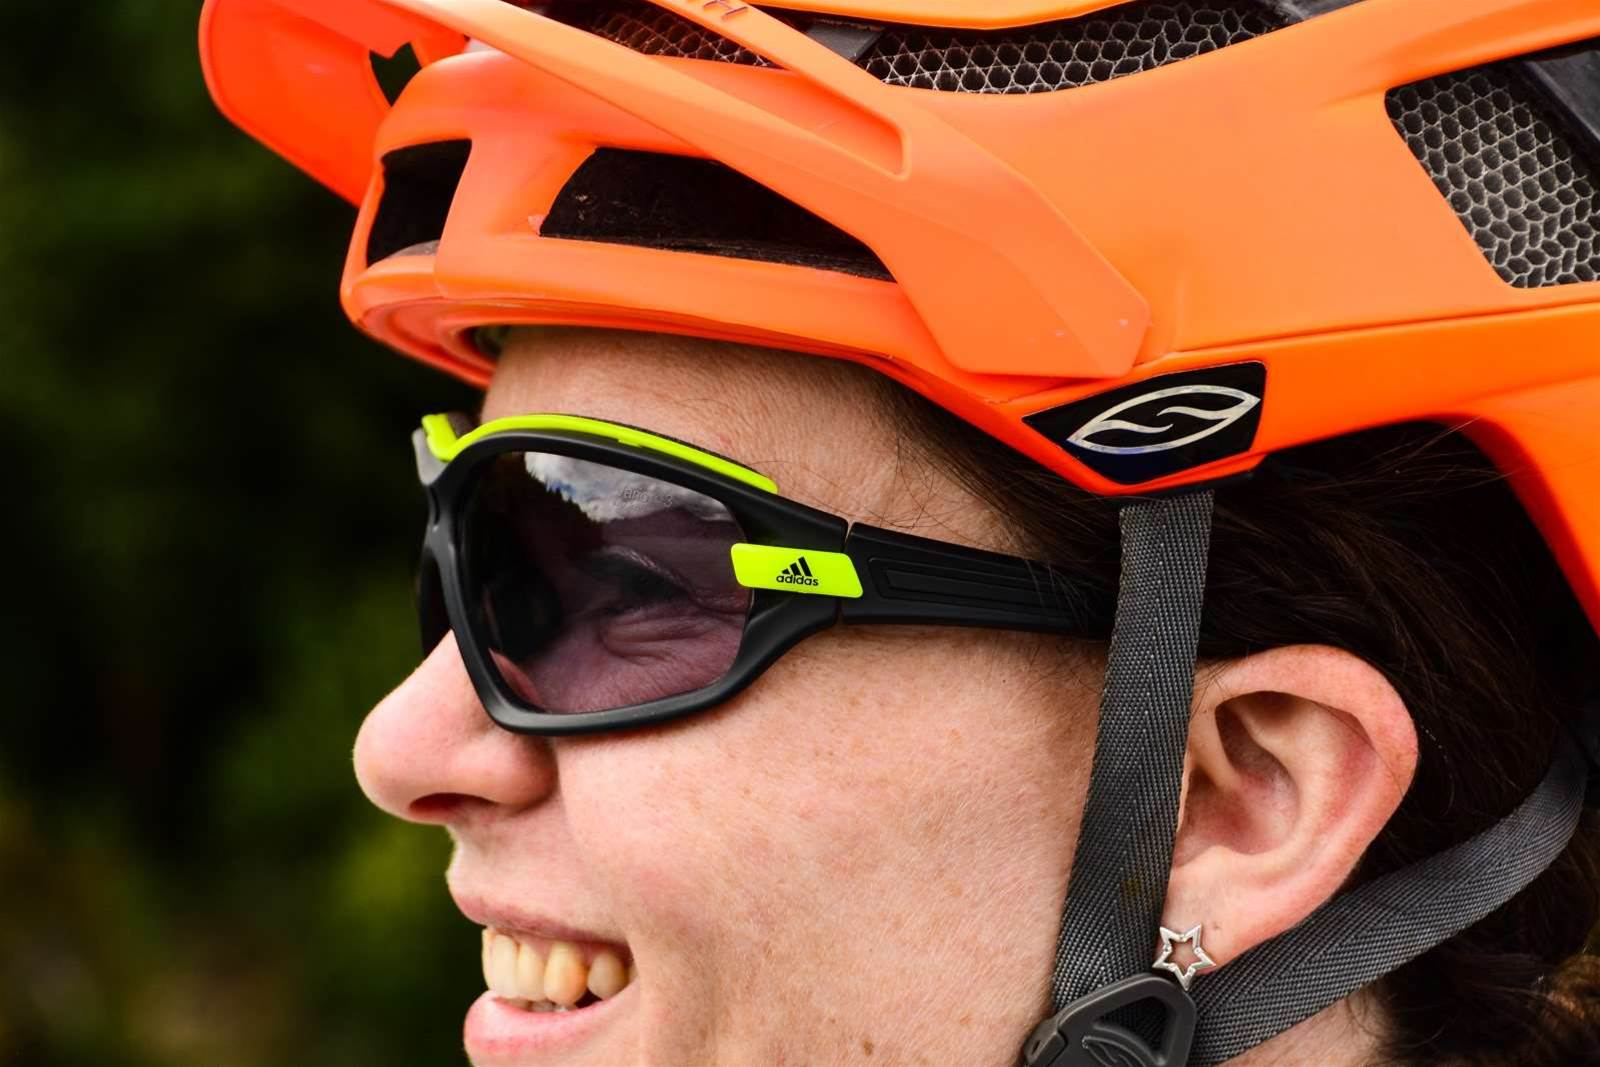 ead26b5a20c The photochromic Vario lenses transition quicker than any I ve used before  and are unique as they ve been designed to work with an extreme-wrap lens  design.